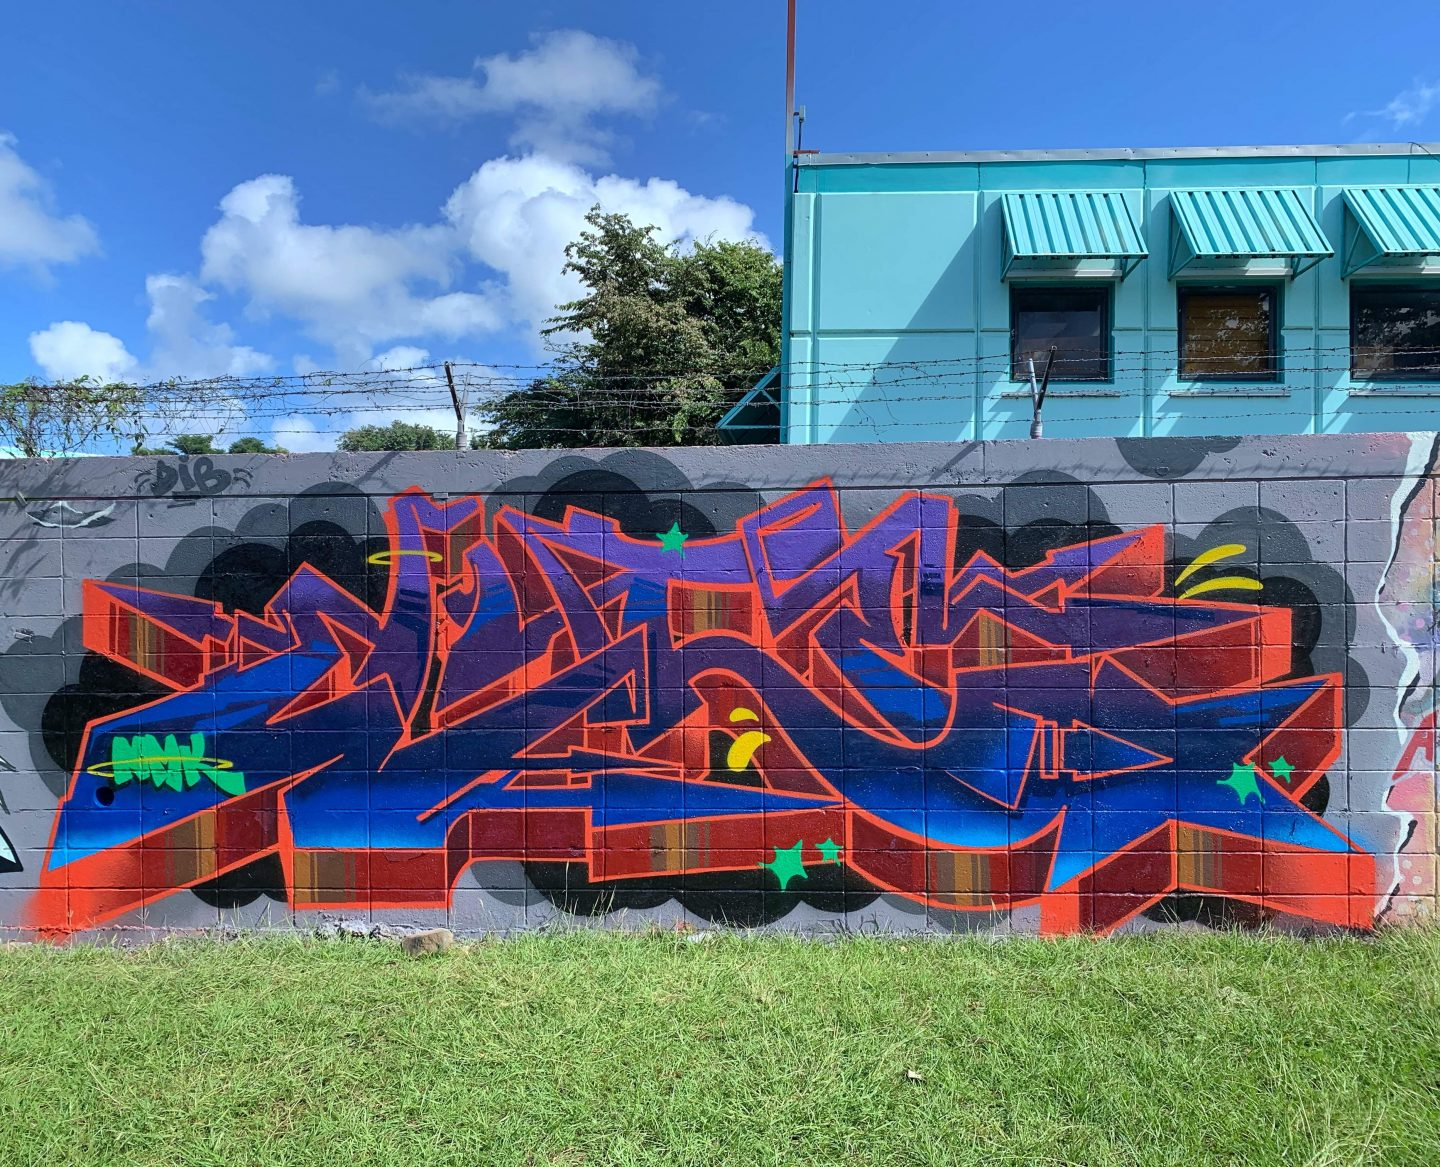 Interview: Dyce